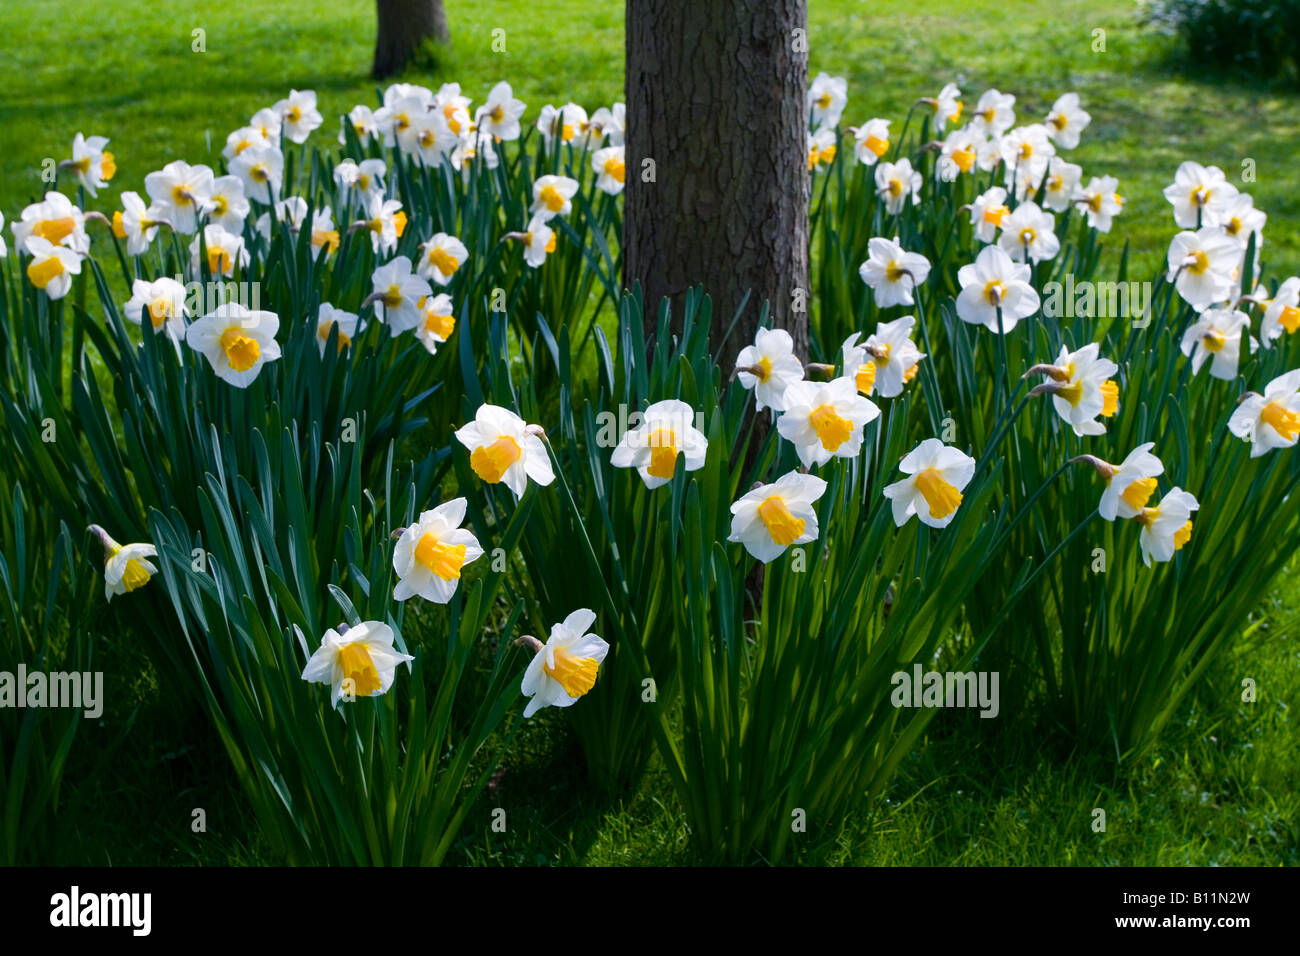 Daffodil flowers growing around a tree trunk stock photo 17863521 alamy - Flowers that grow on tree trunks ...